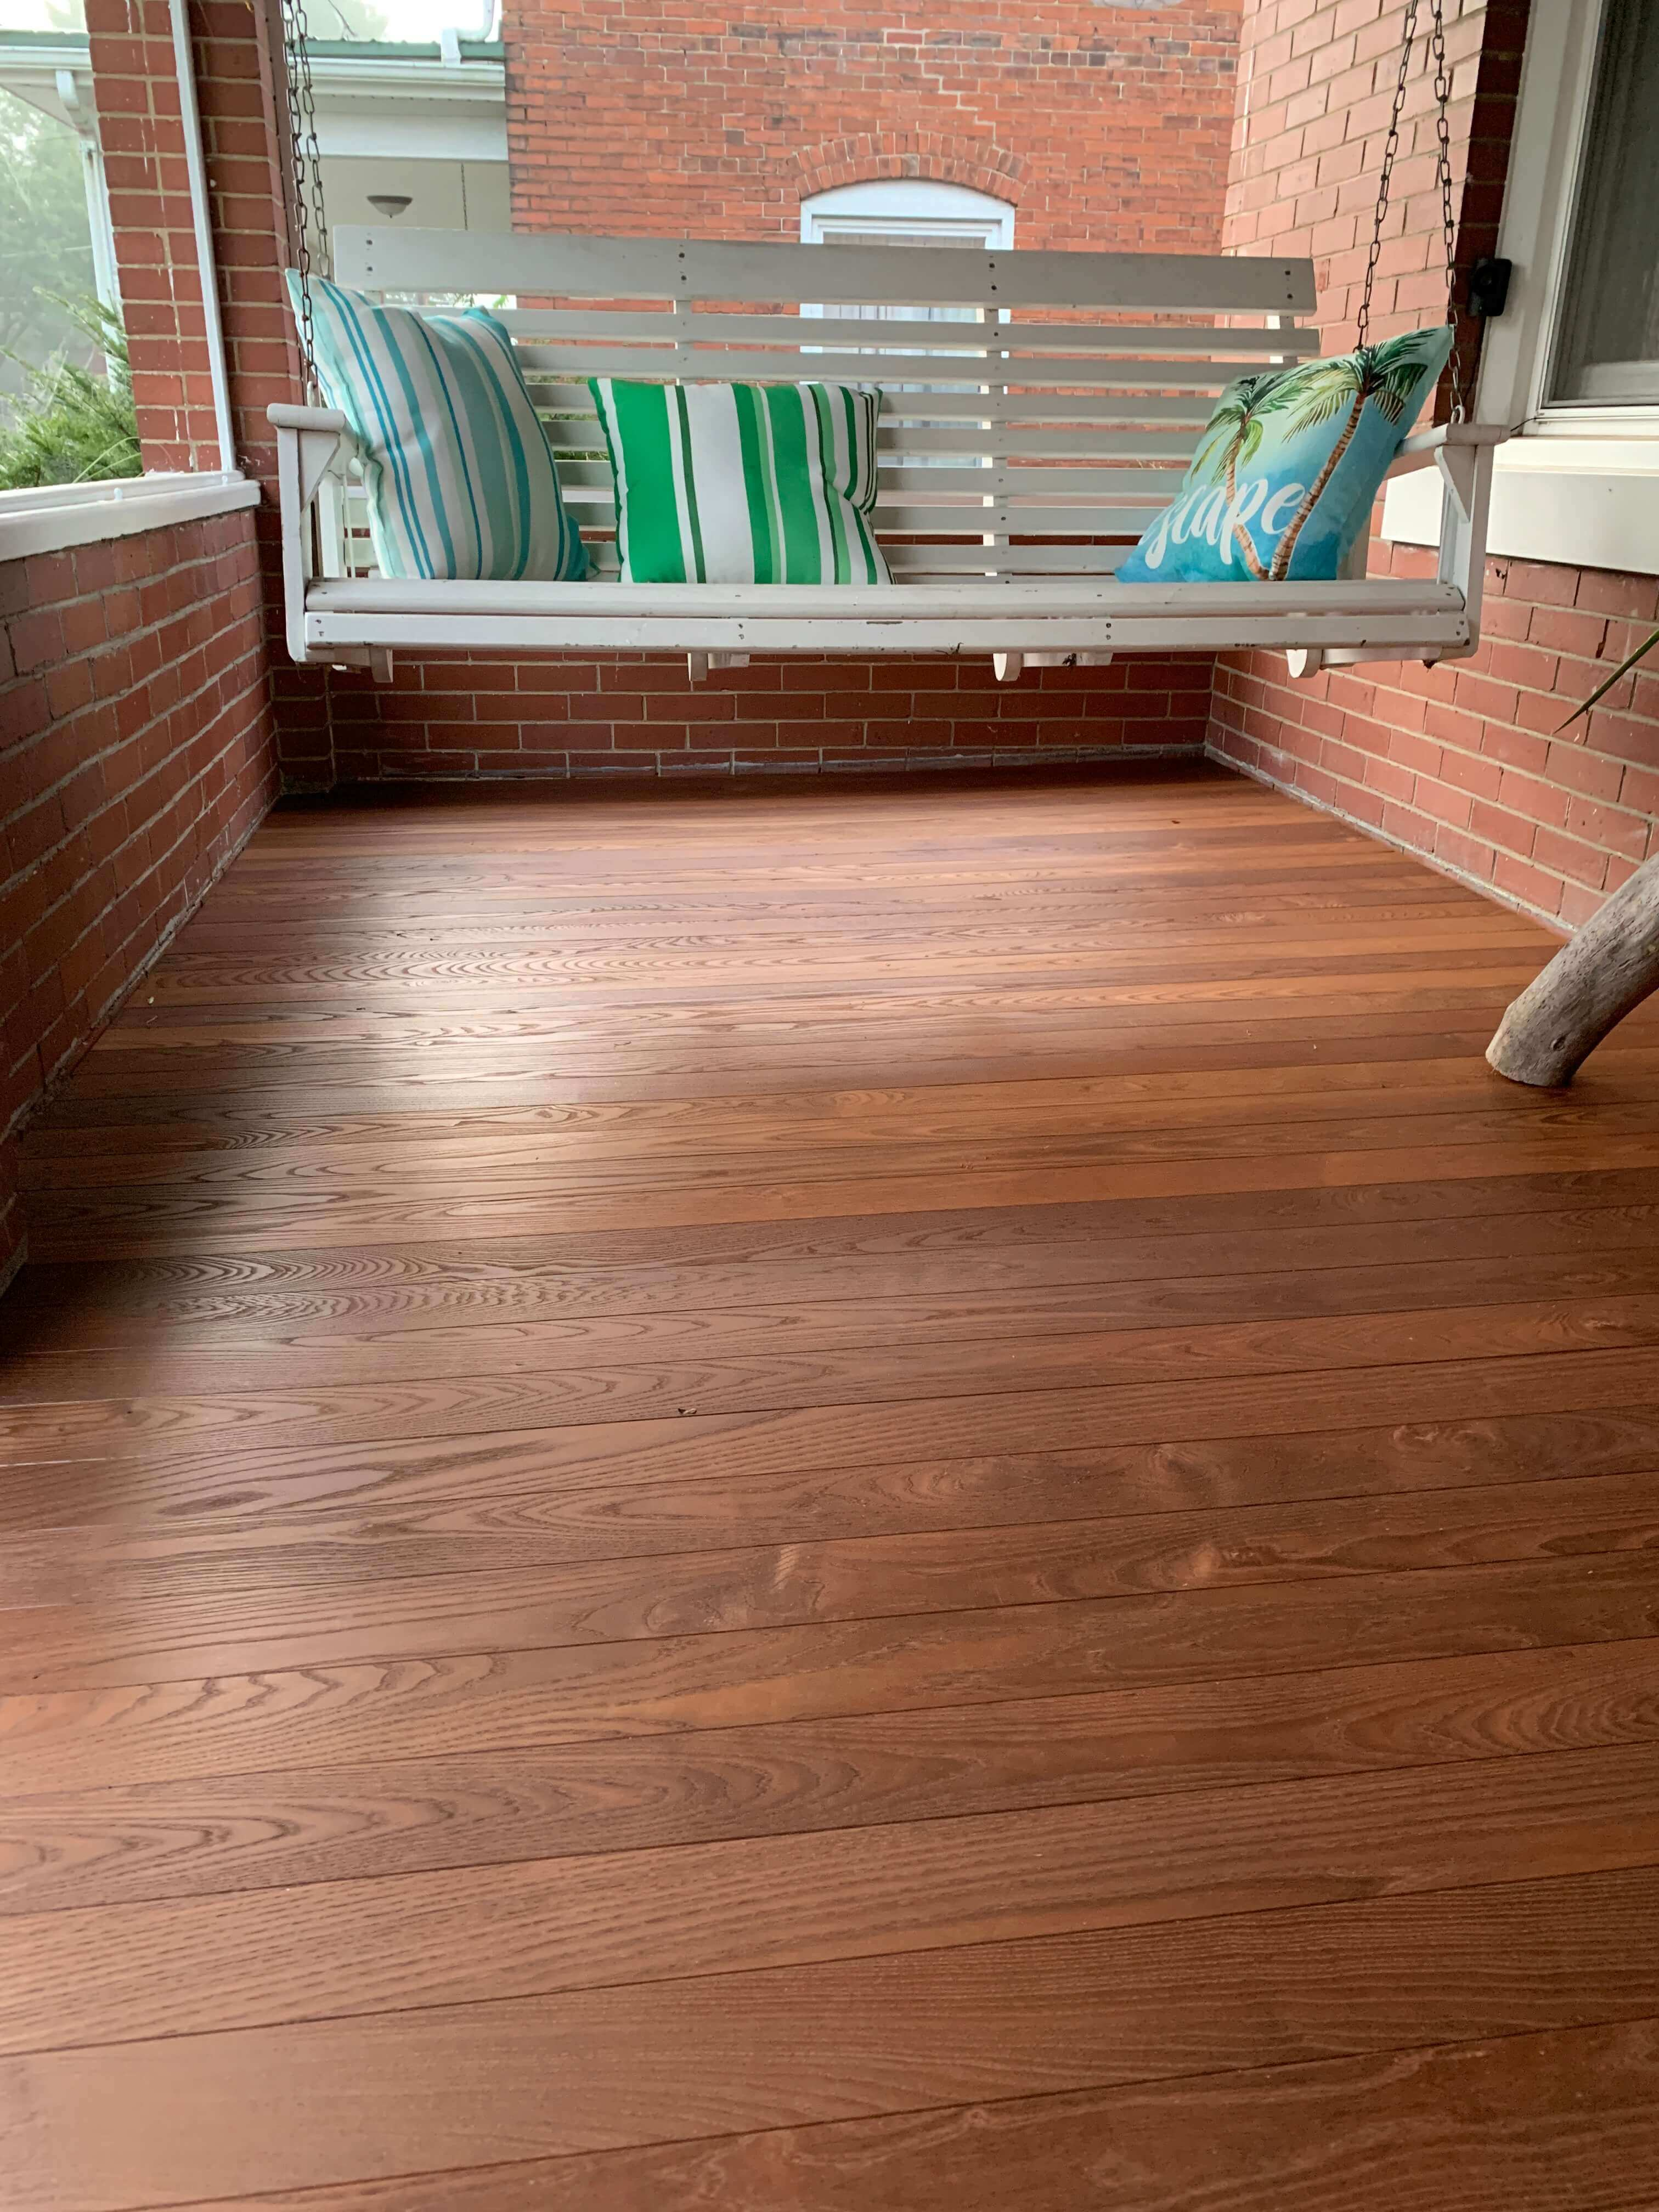 Americana Thermally Modified Wood Porch Flooring